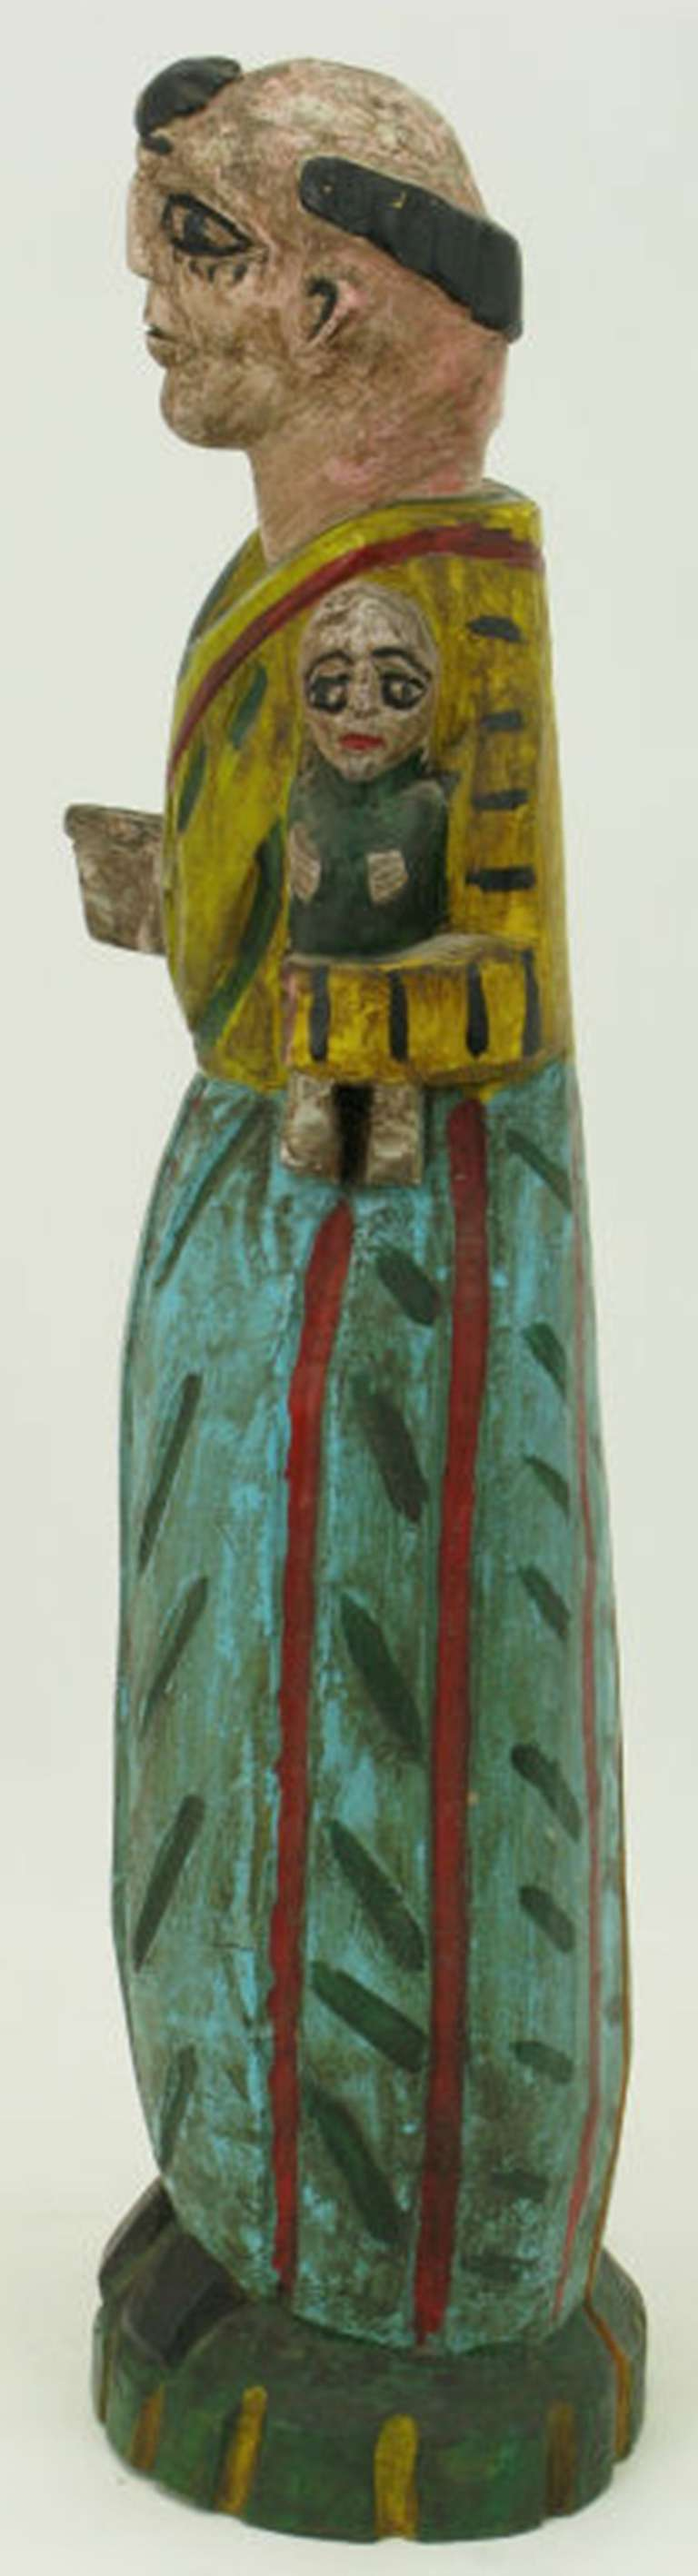 Hand carved and painted santo with child, possibly John The Baptist. The vivid polychrome colors and primitive wood carving make for a striking folk art piece.